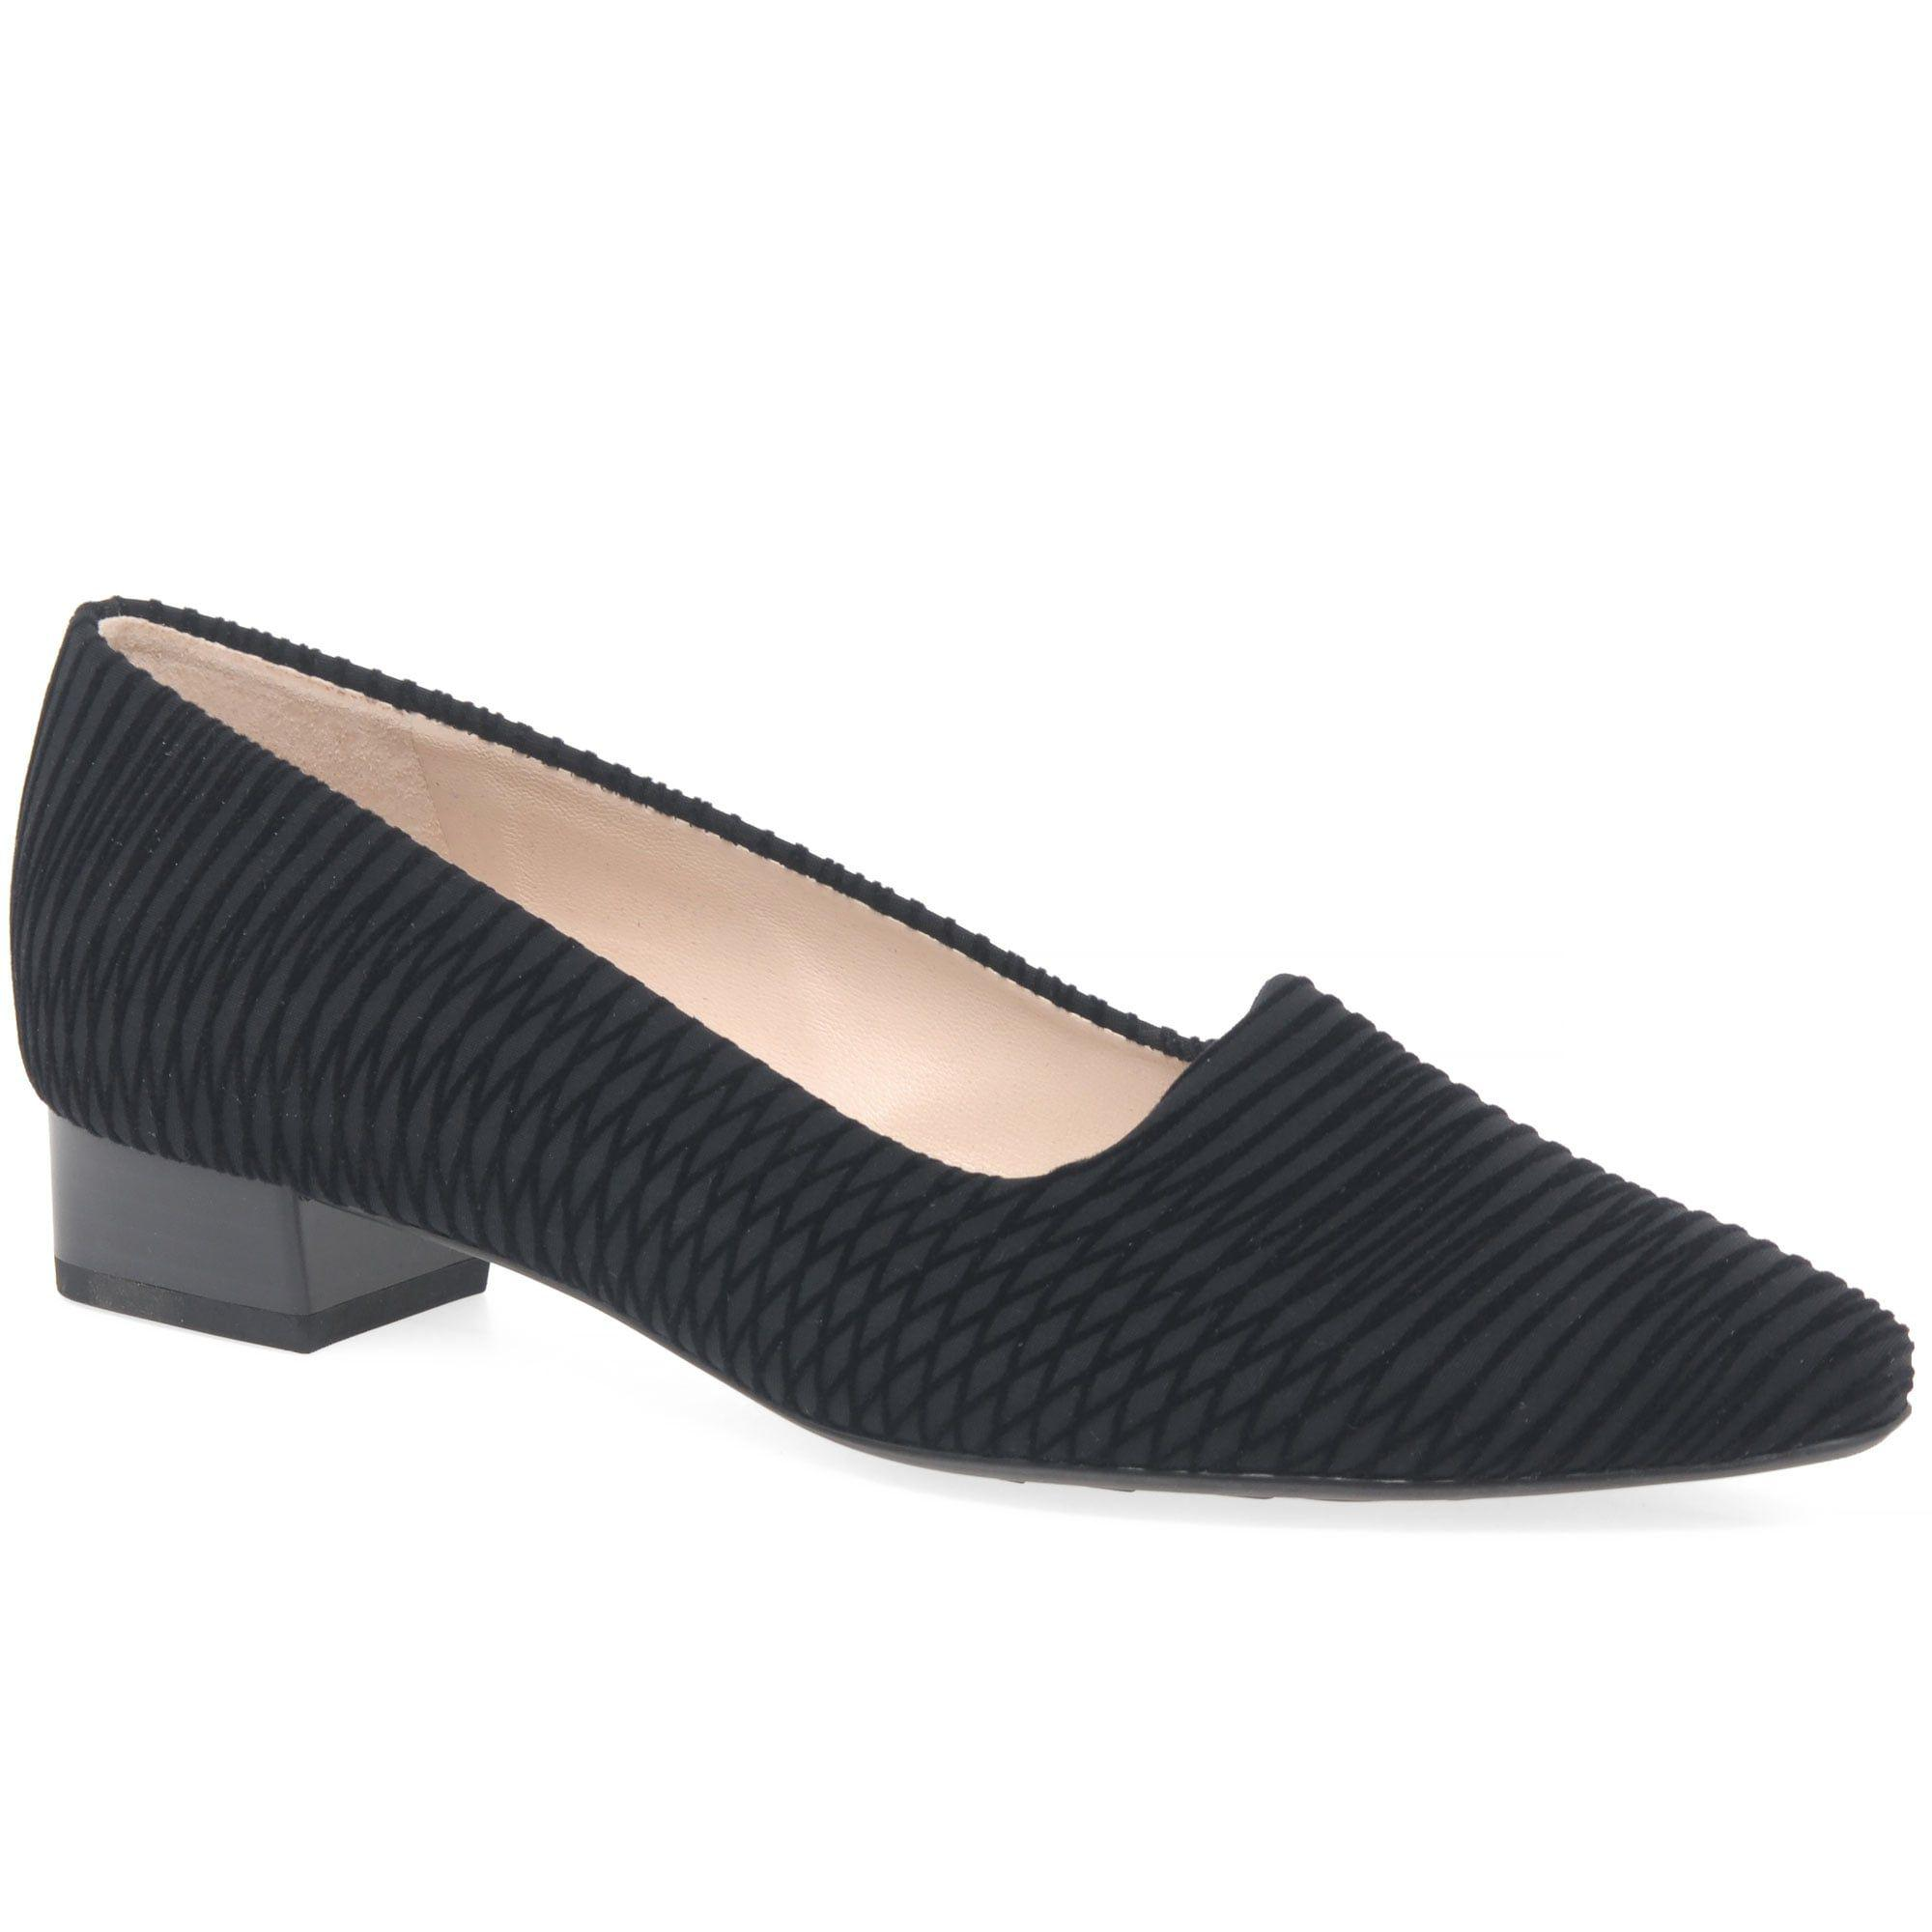 Black 'Lisana' low heeled shoes sale prices UnR0ld6